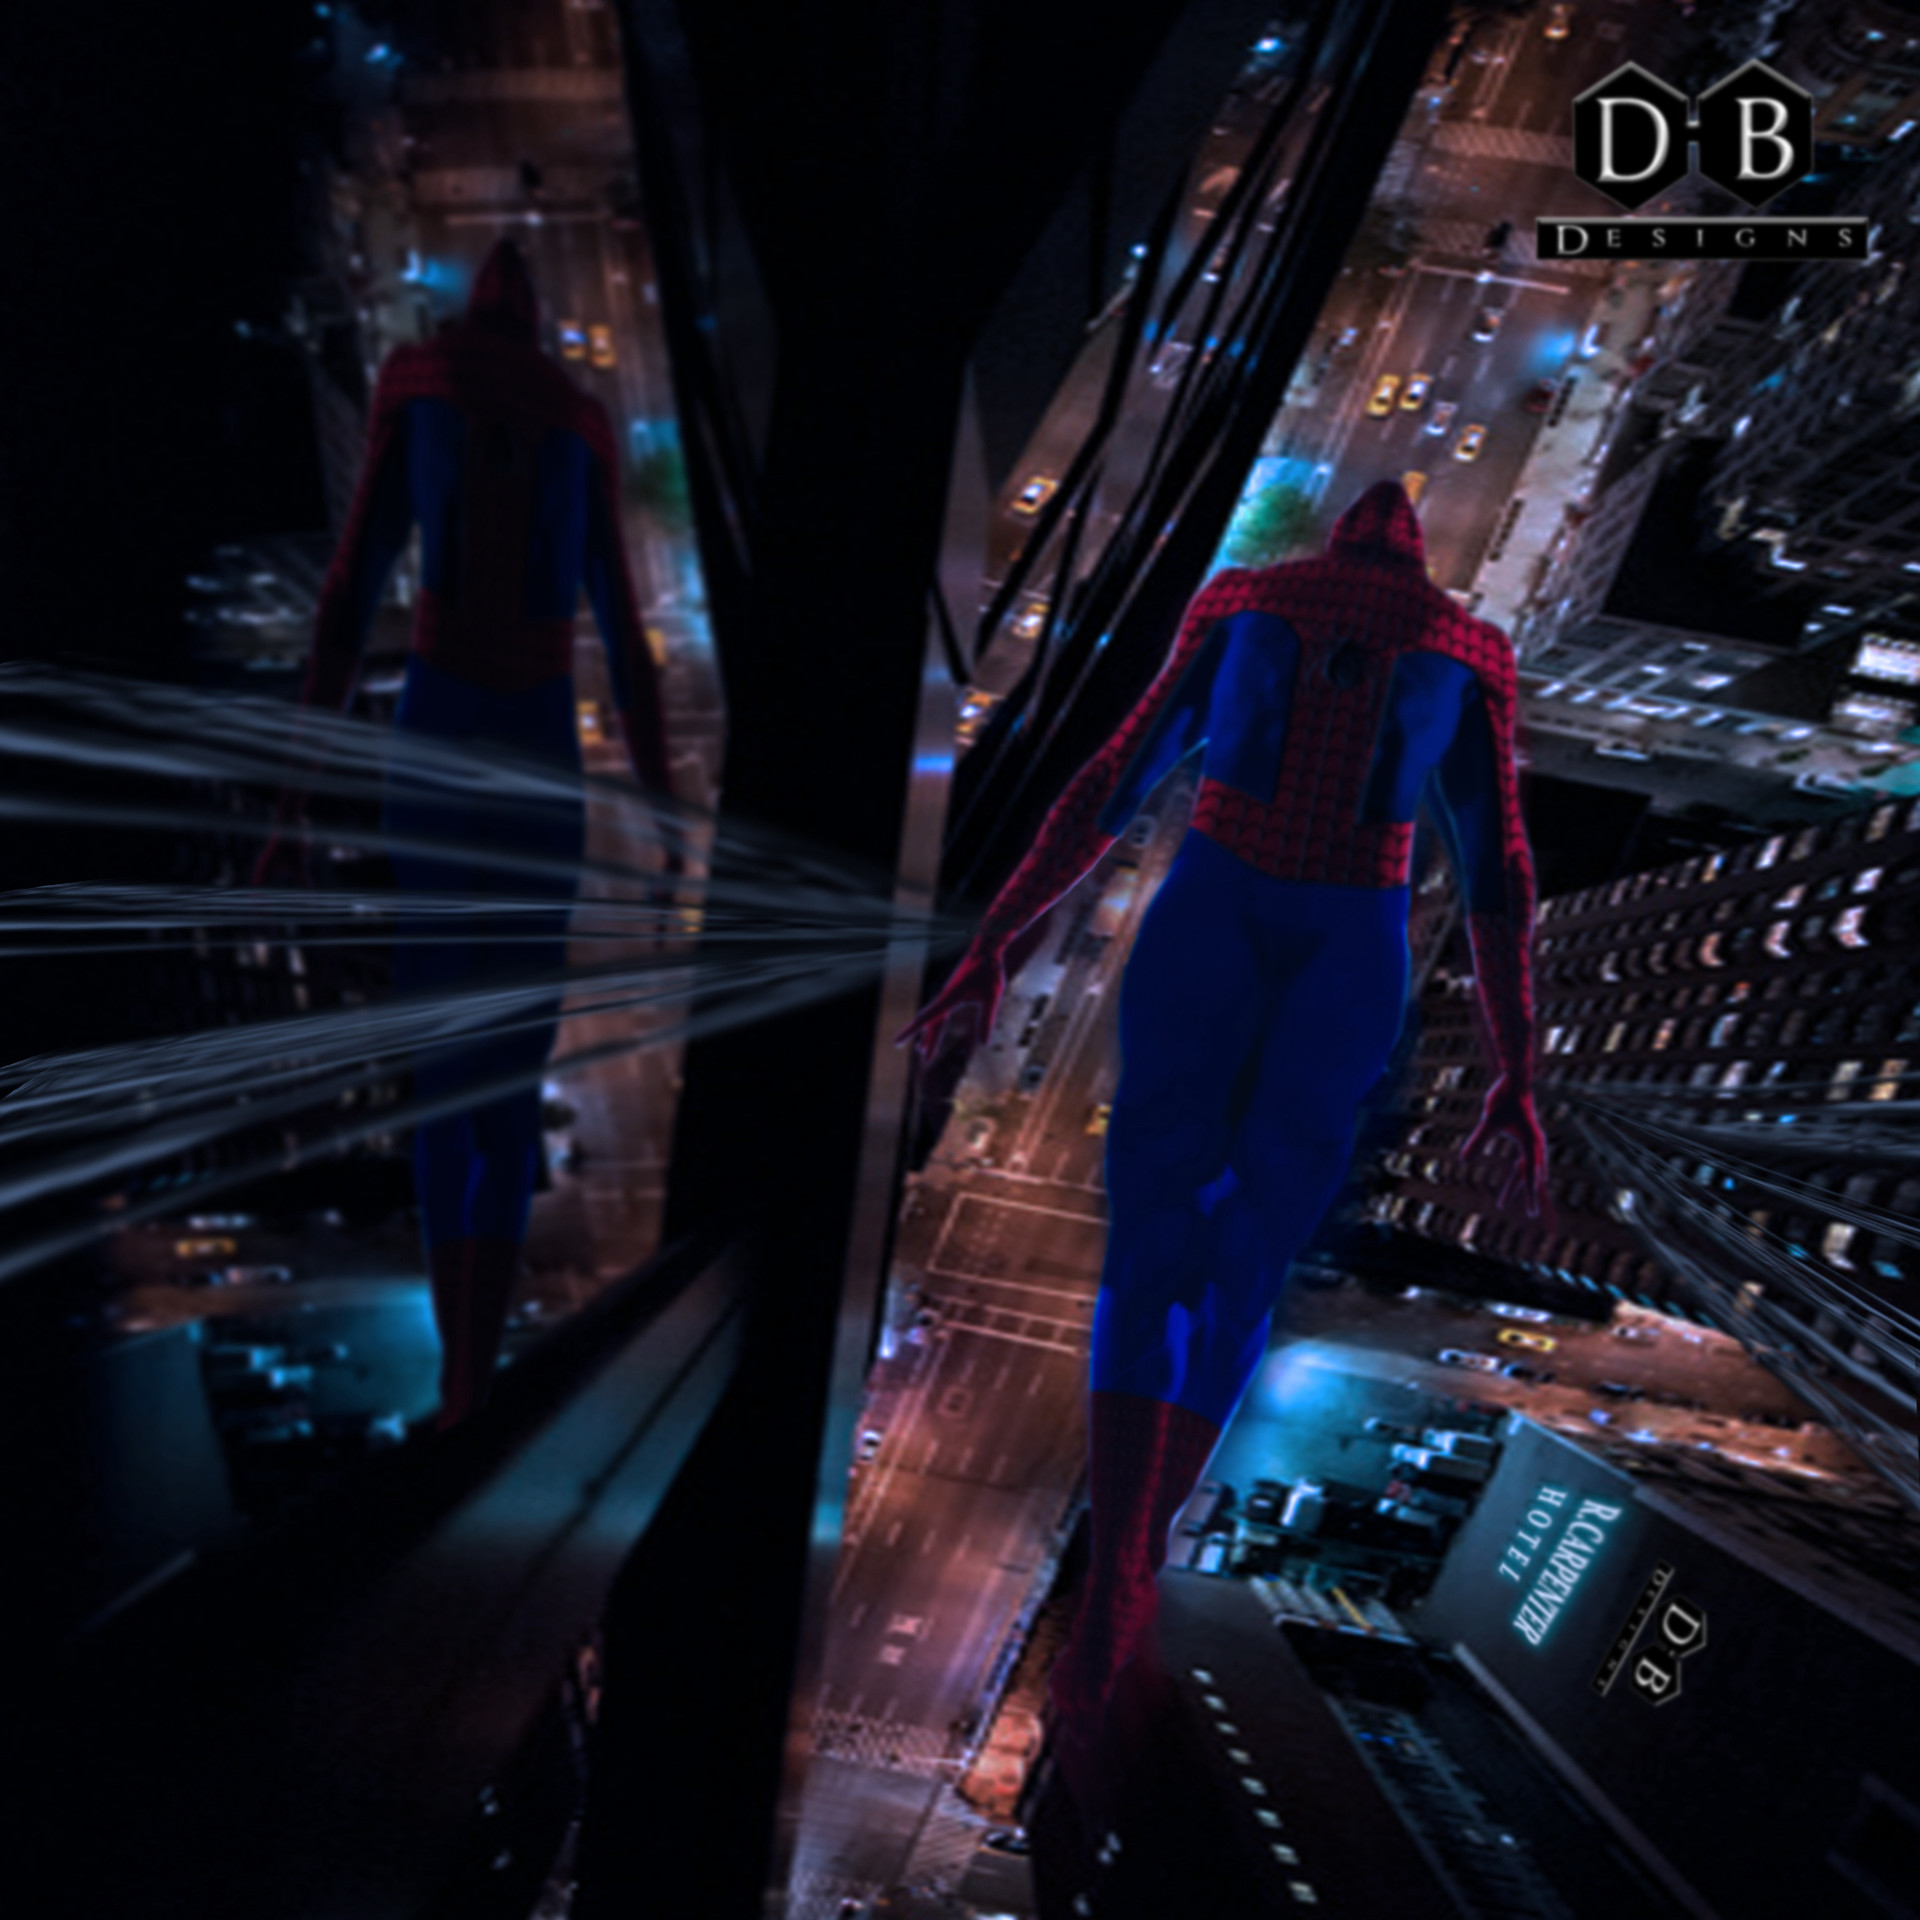 Danny berry the amazing spider man render danny berry the amazing spiderman render rachel voltagebd Images